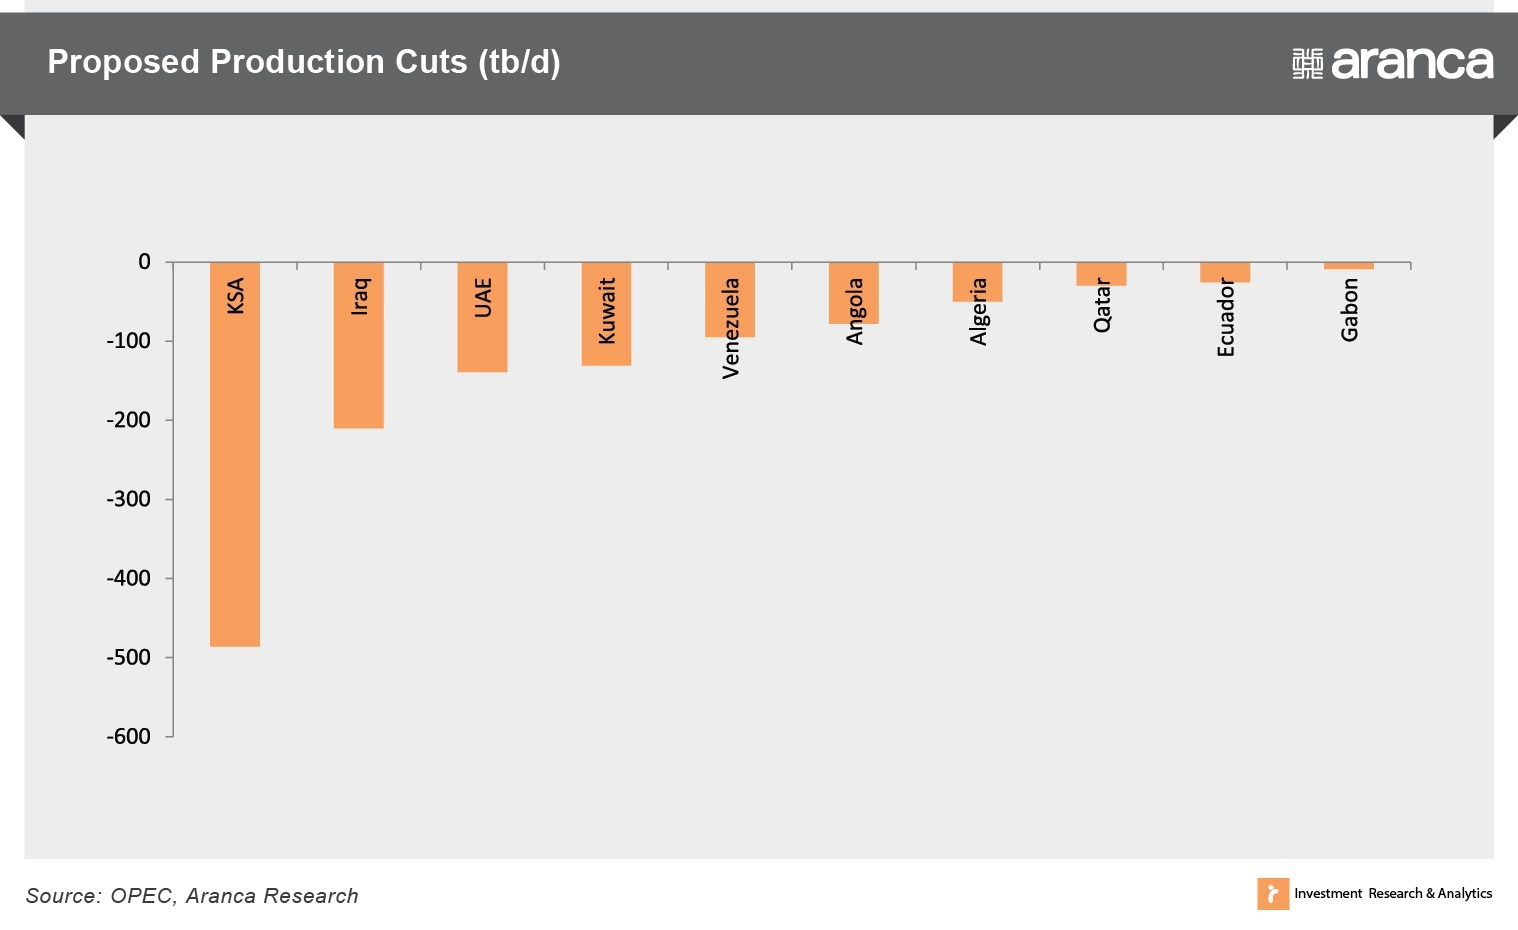 Proposed Oil Production Cuts (tb/d)